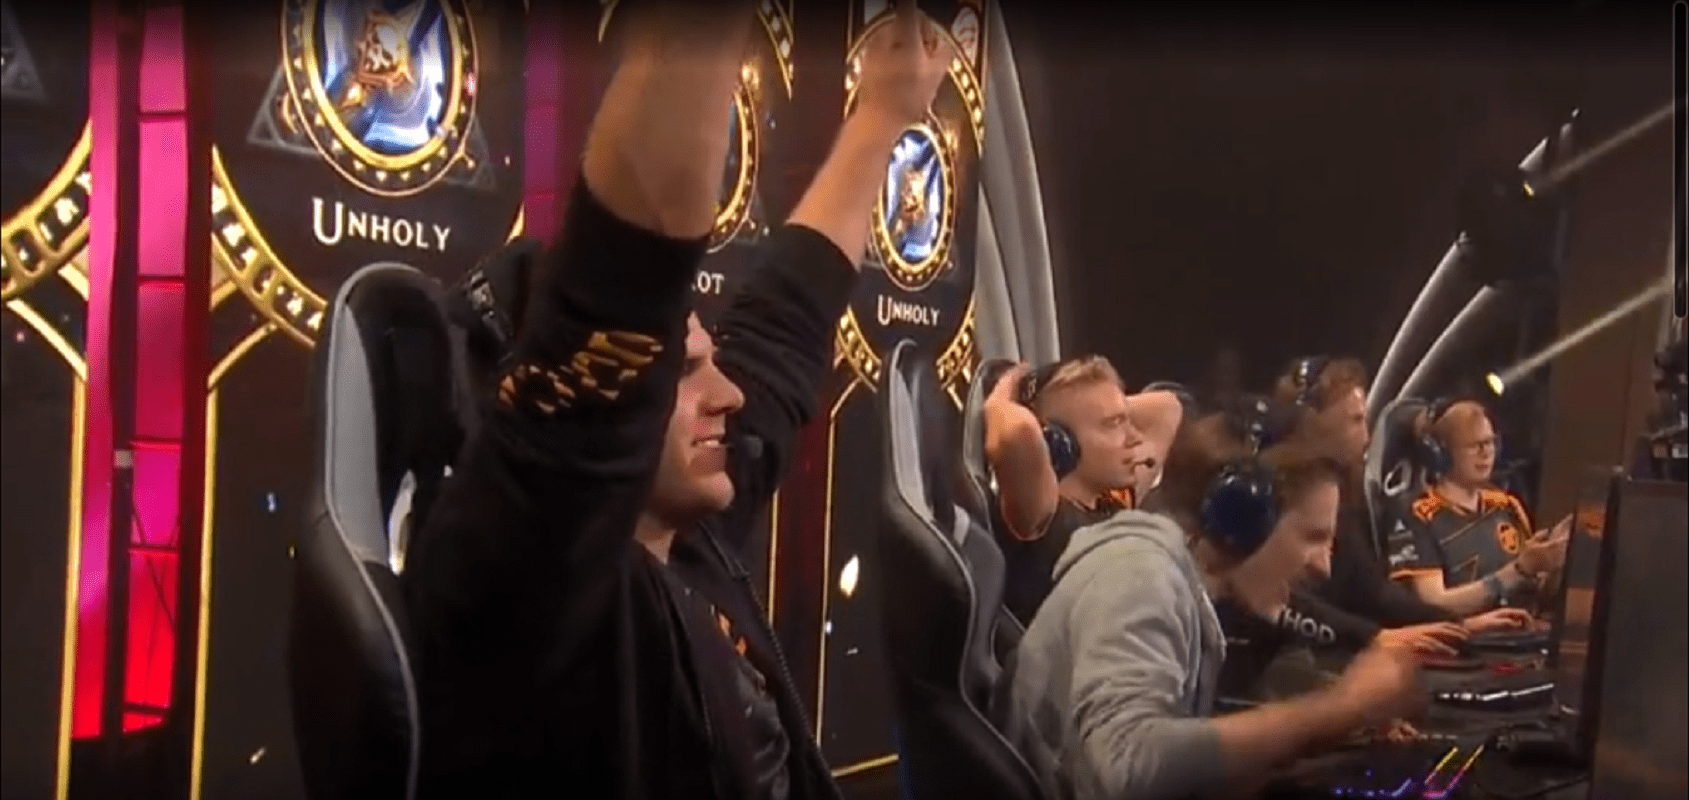 Blizzard Esports Champs Had A Terrible Experience During Grand Finals At Blizzcon